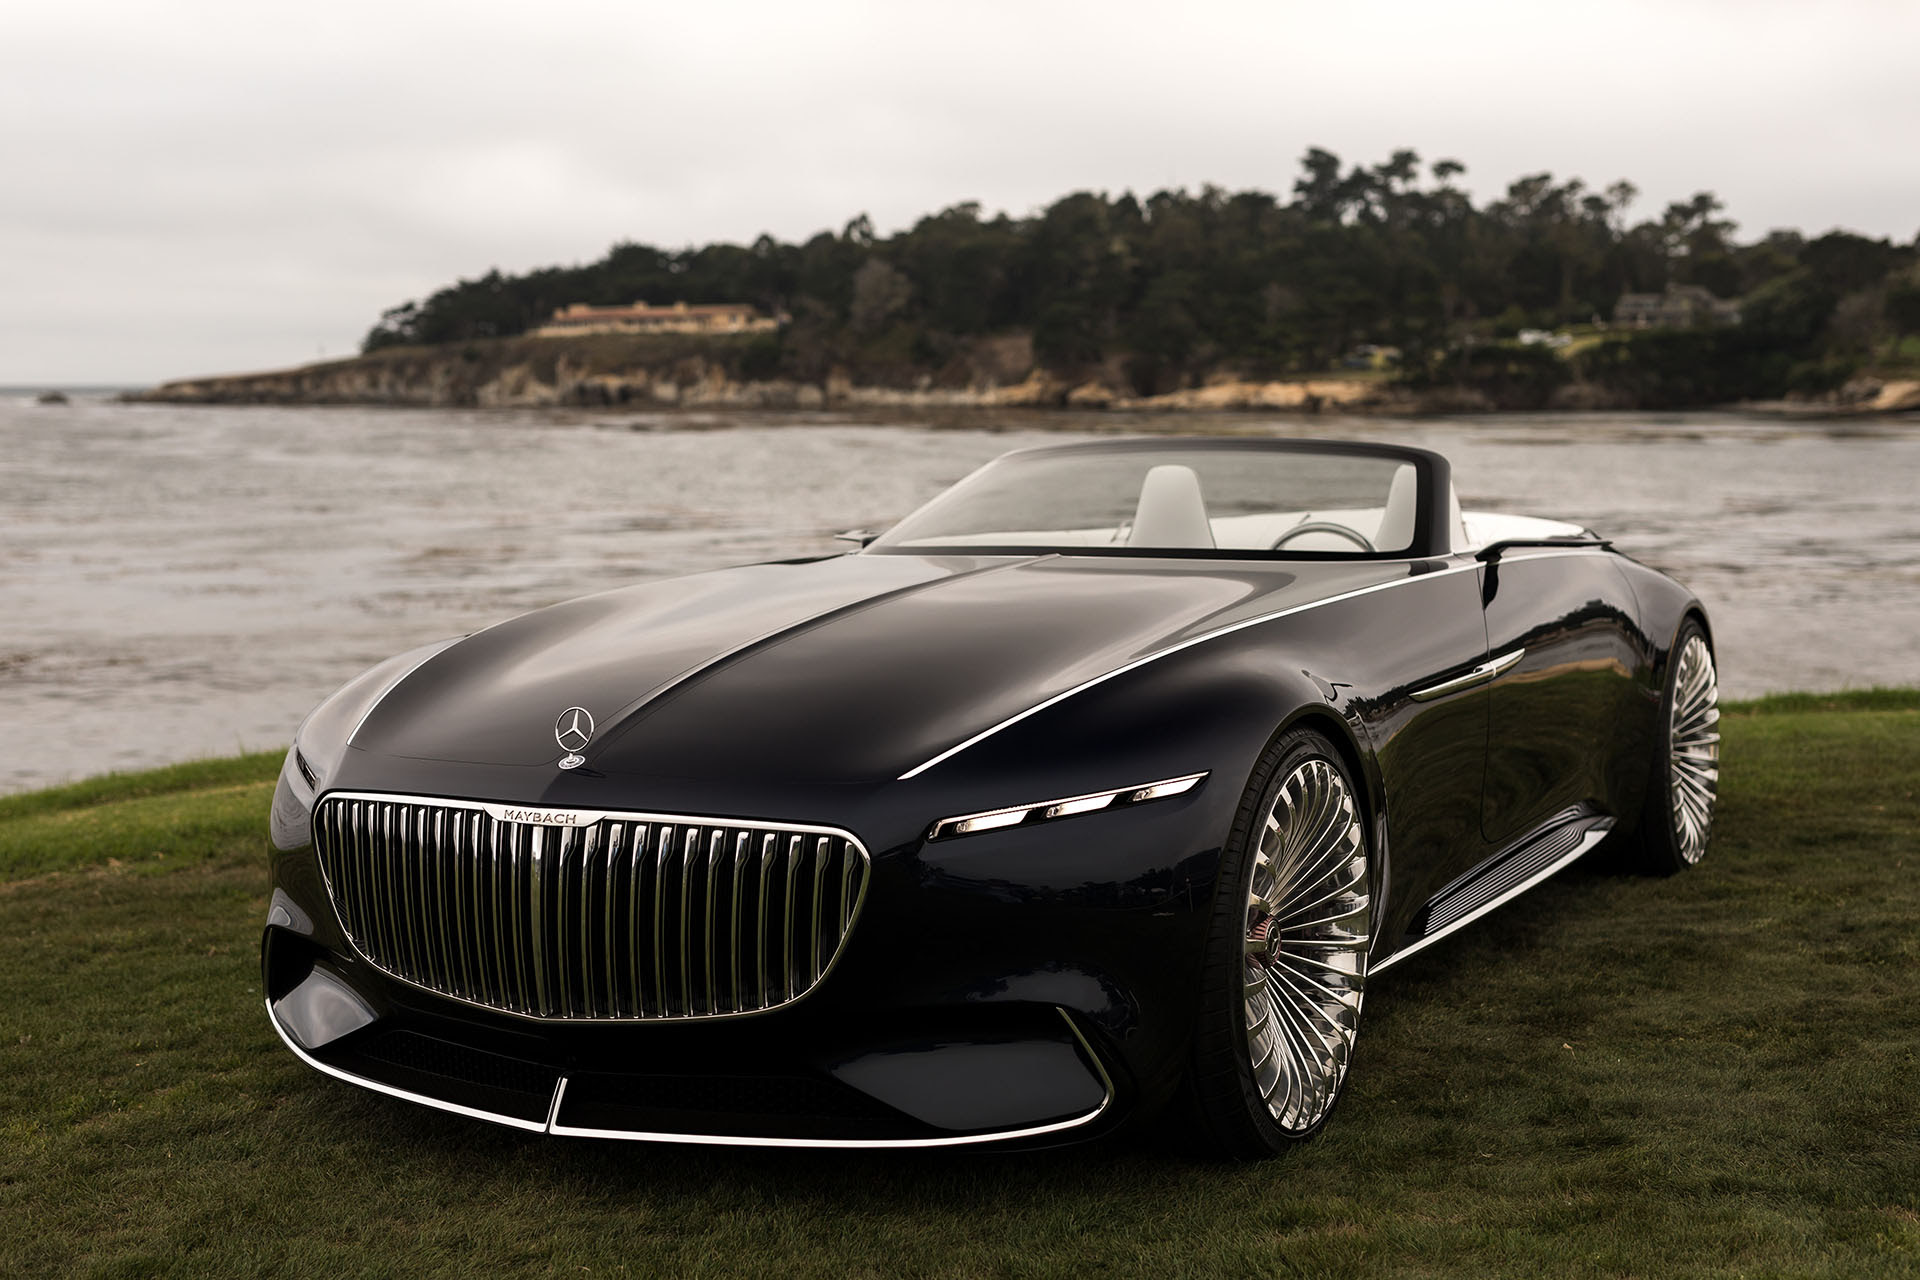 2017 Monterey: The Vision Mercedes-Maybach 6 Cabriolet ...